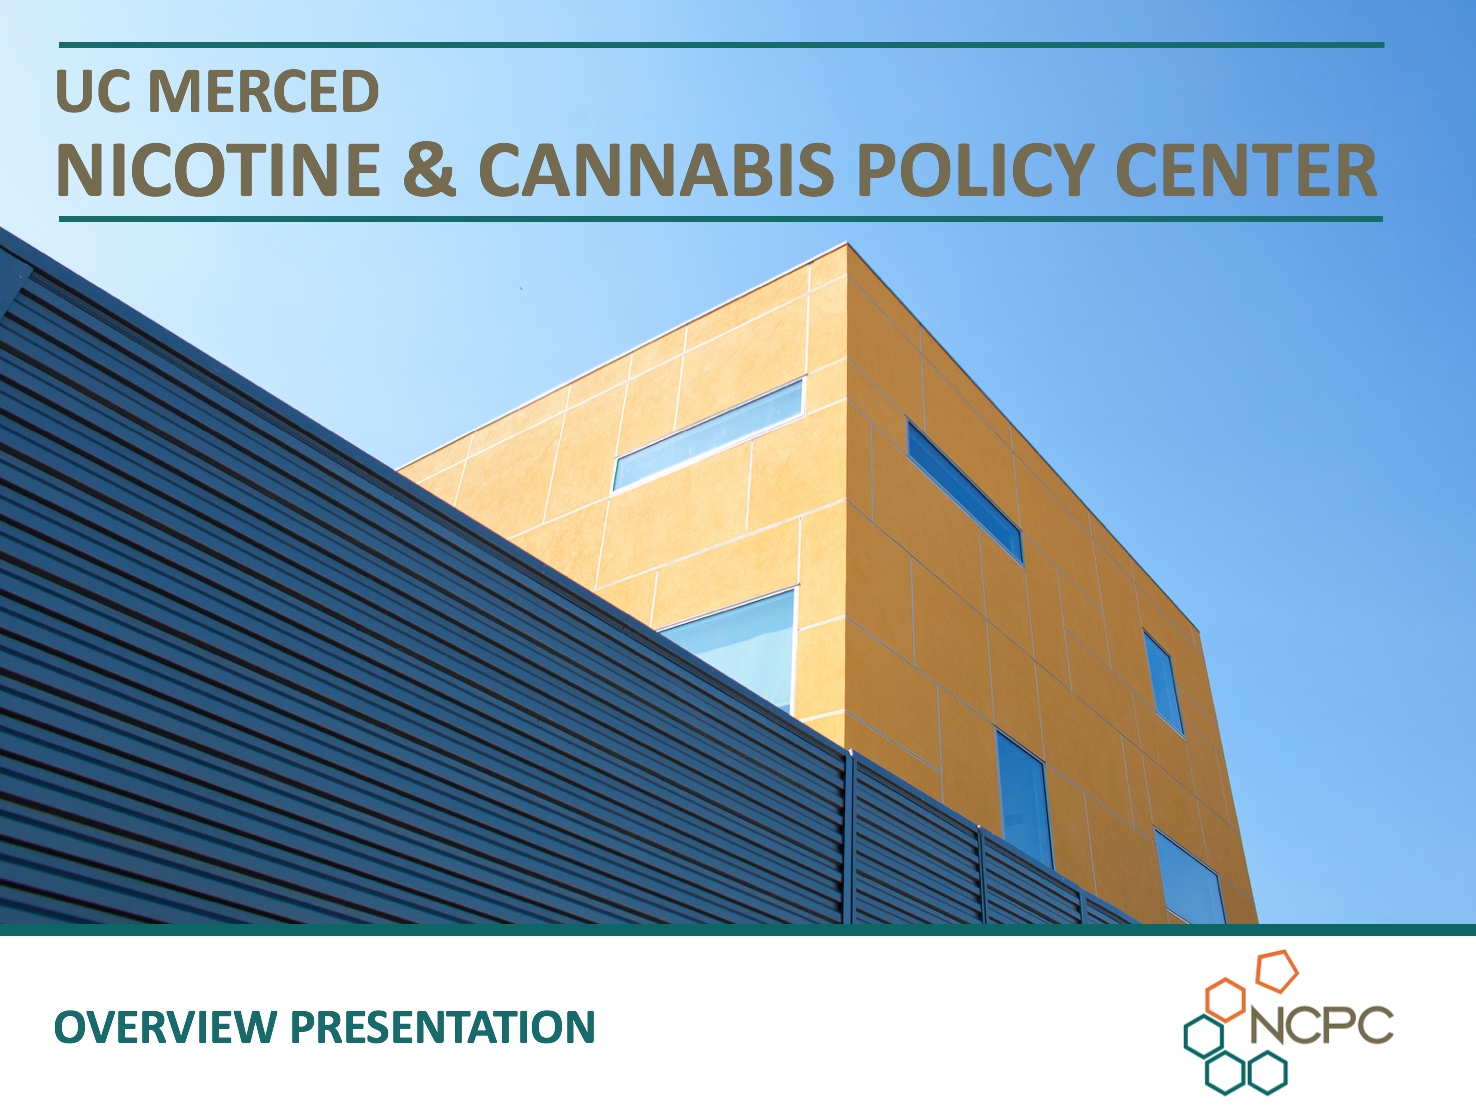 NCPC Overview Presentation